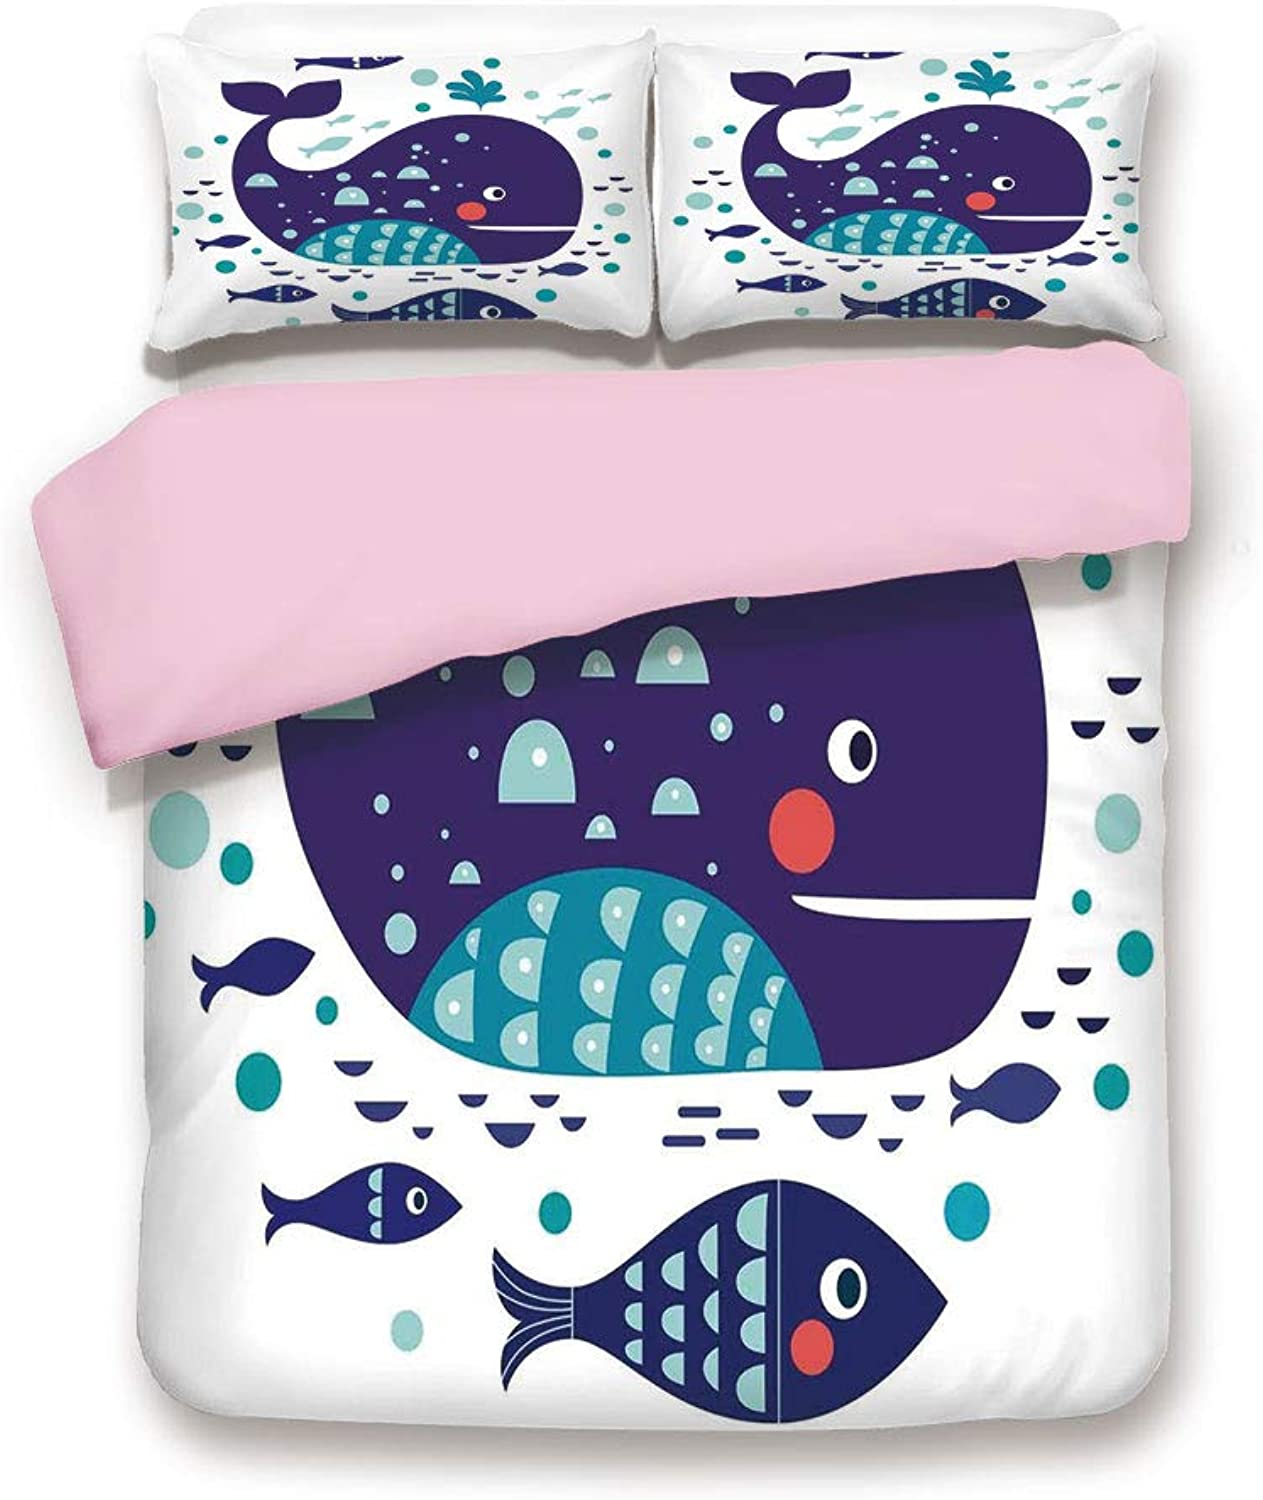 Pink Duvet Cover Set,King Size,Navy Sea Theme Cartoon Big Fish with Others in Ocean Swimming Image,Decorative 3 Piece Bedding Set with 2 Pillow Sham,Best Gift for Girls Women,Sky bluee and Navy bluee